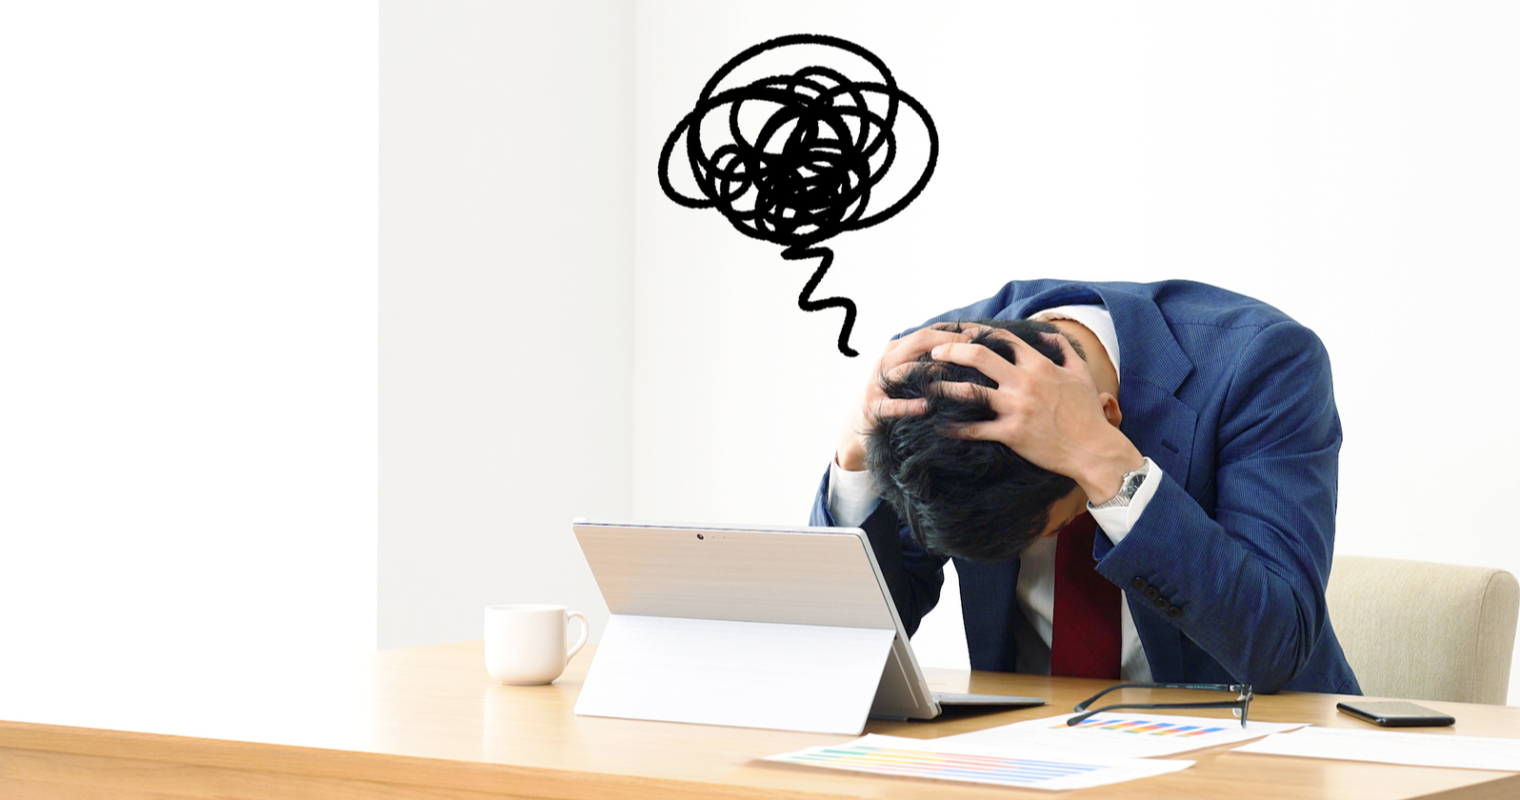 10 of the Worst SEO Mistakes Even the Experts Make